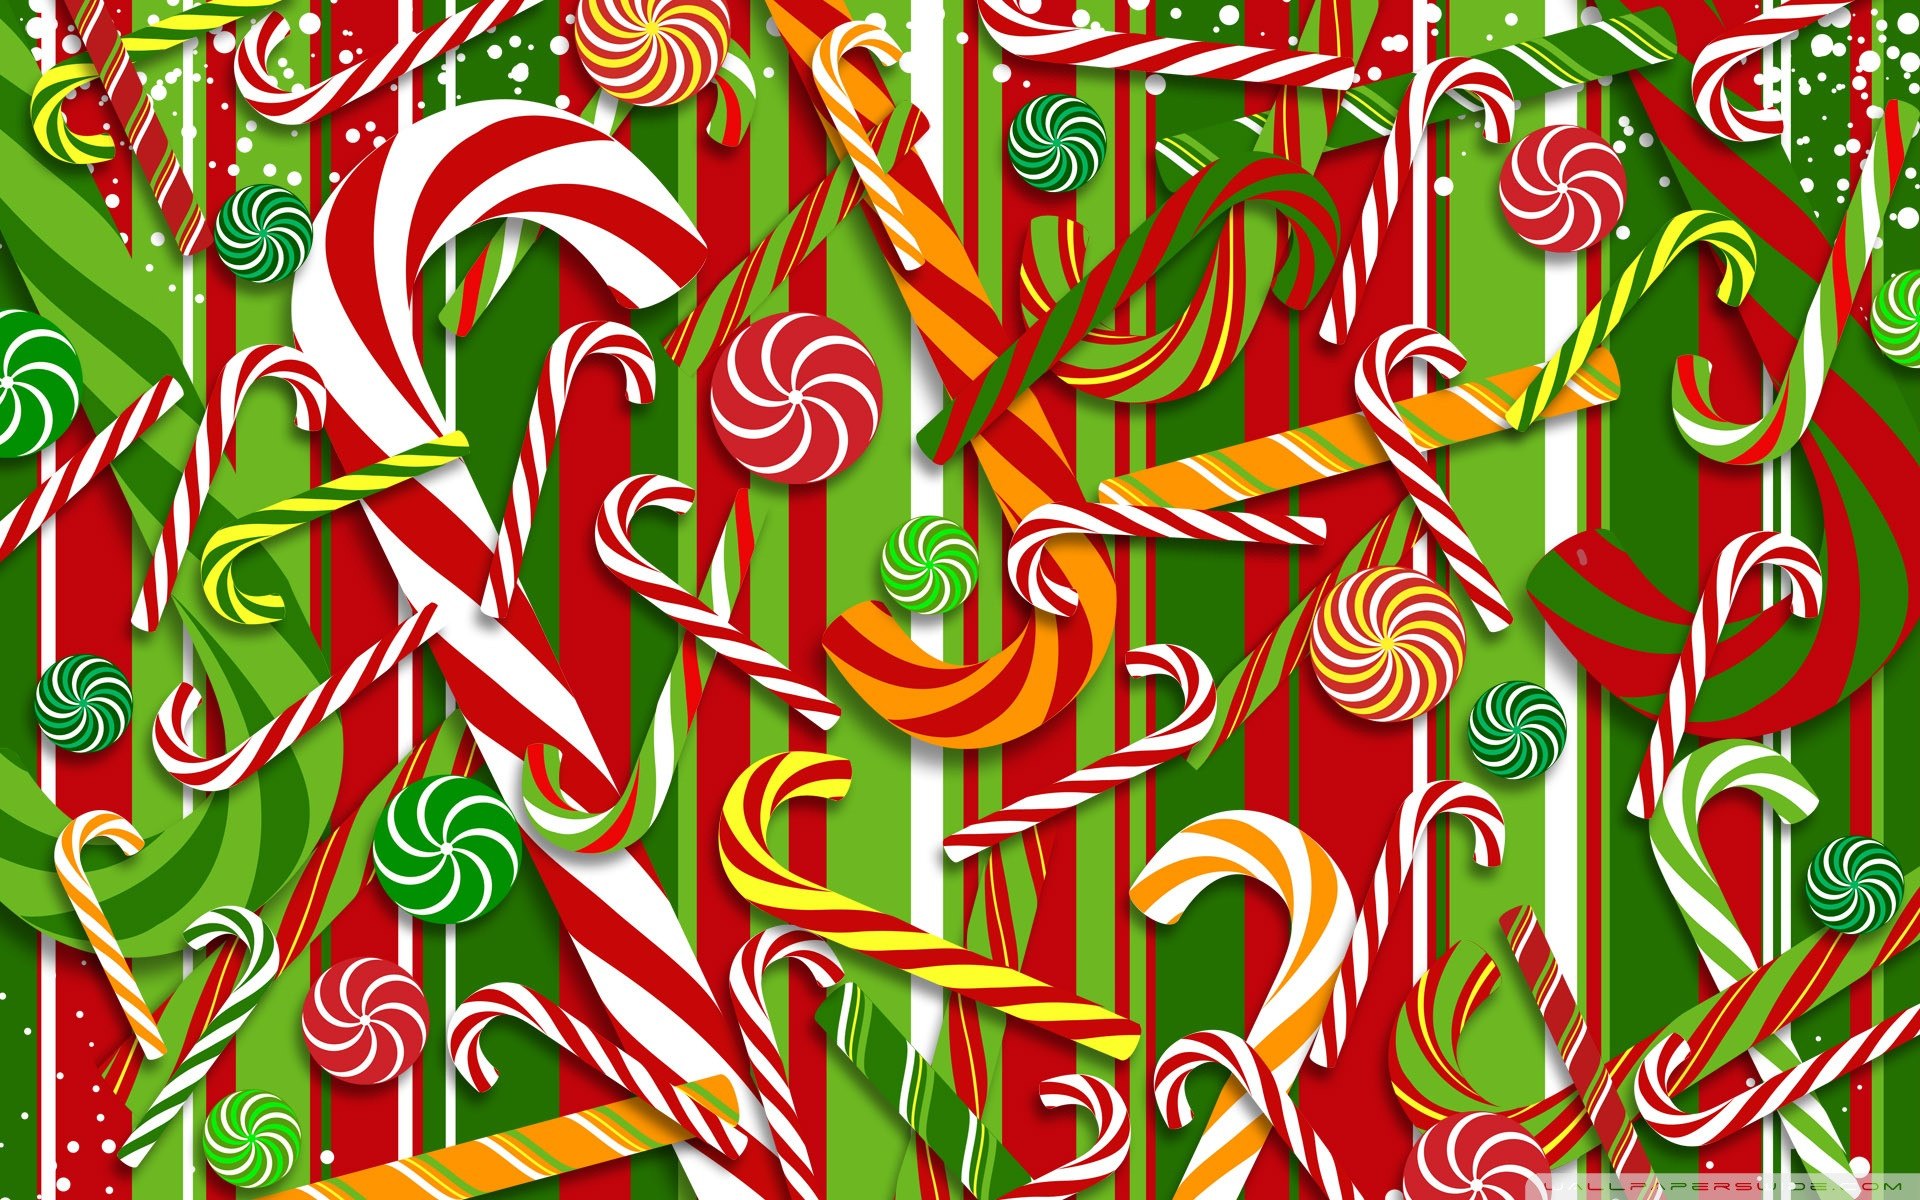 Christmas Candy Cane Background  100 Best HD Christmas Wallpapers for Your Desktop